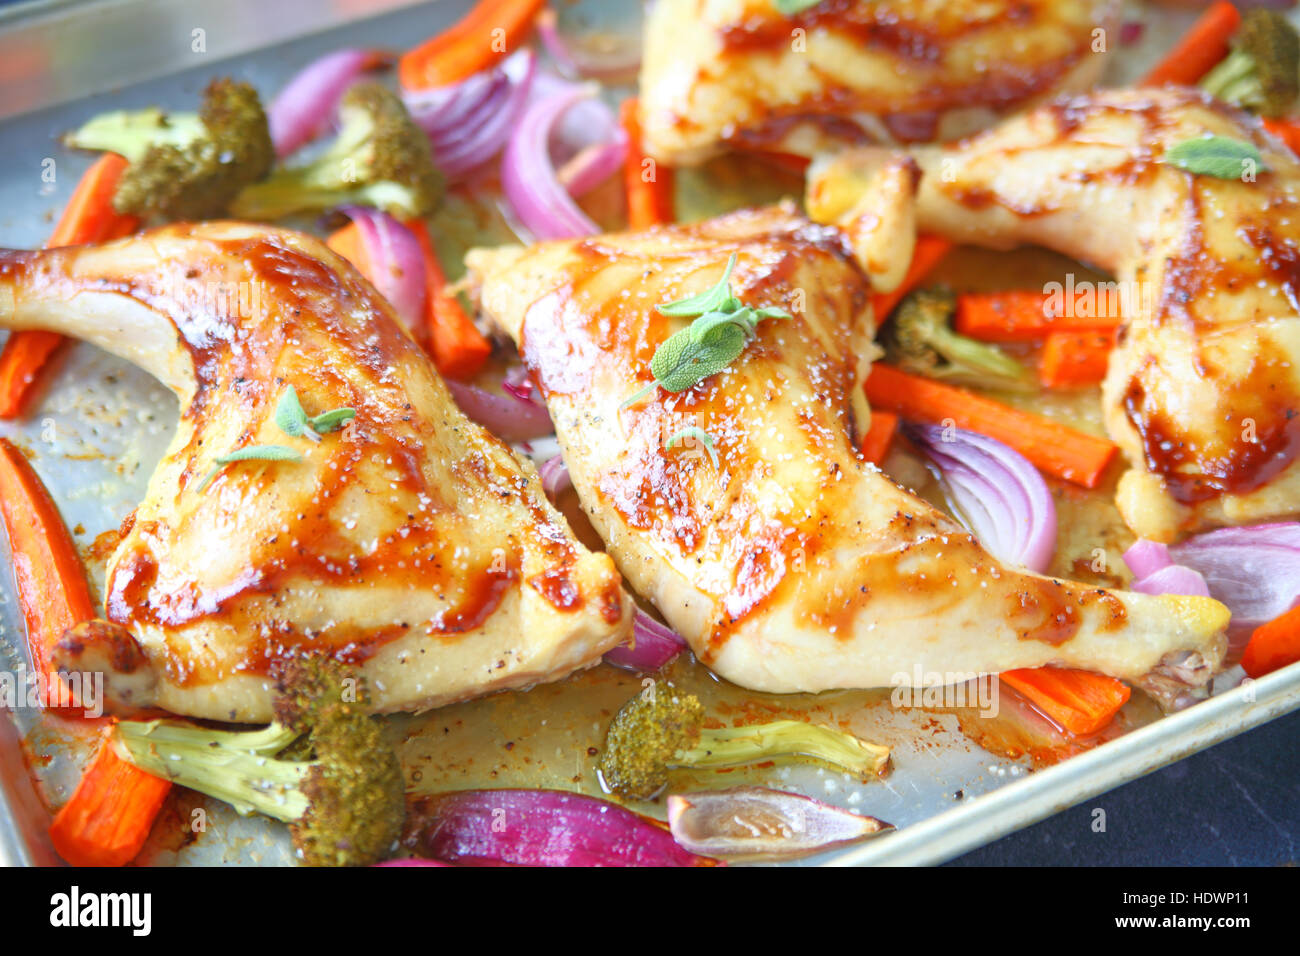 Chicken quarters roasted with carrots, onions and broccoli on sheet pan - Stock Image